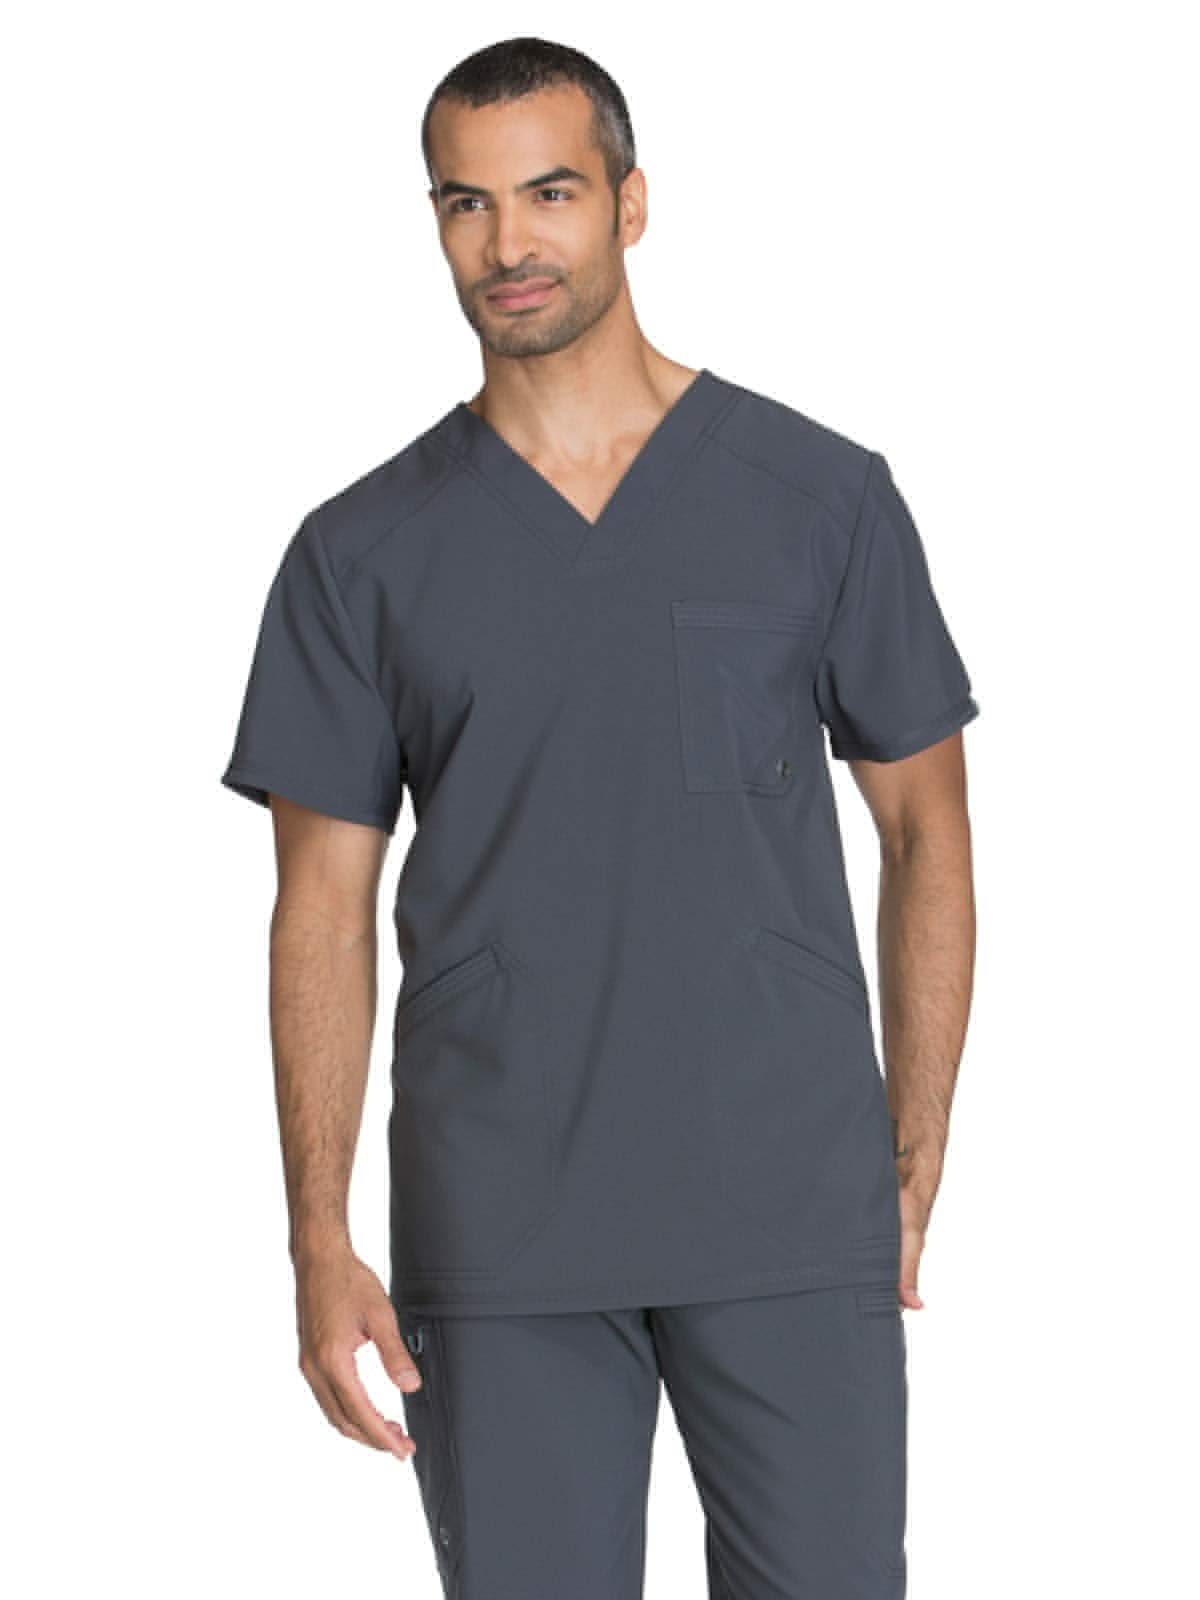 Cherokee Infinity CK900A Men's V-Neck Top Pewter 5XL by Cherokee